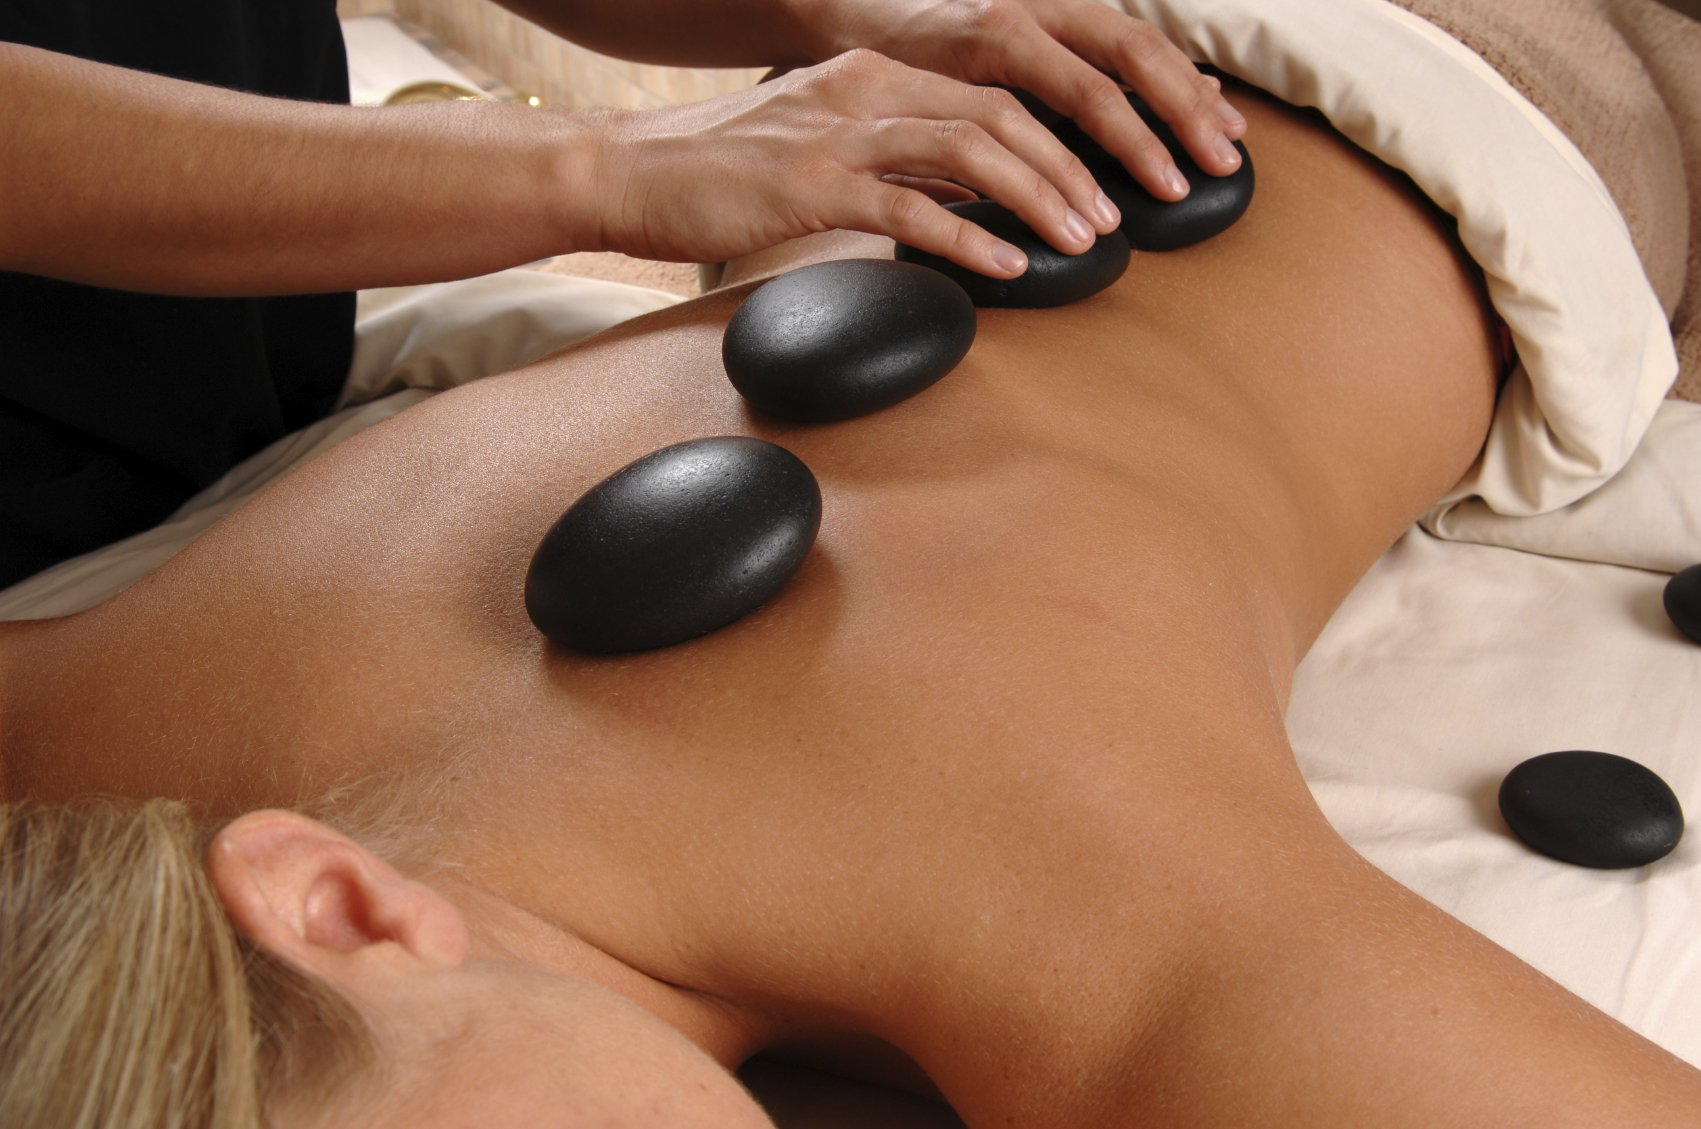 Aboval 20Pcs Professional Massage Stones Set Natural Lava Basalt Hot Stone for Spa, Massage Therapy by Aboval (Image #8)